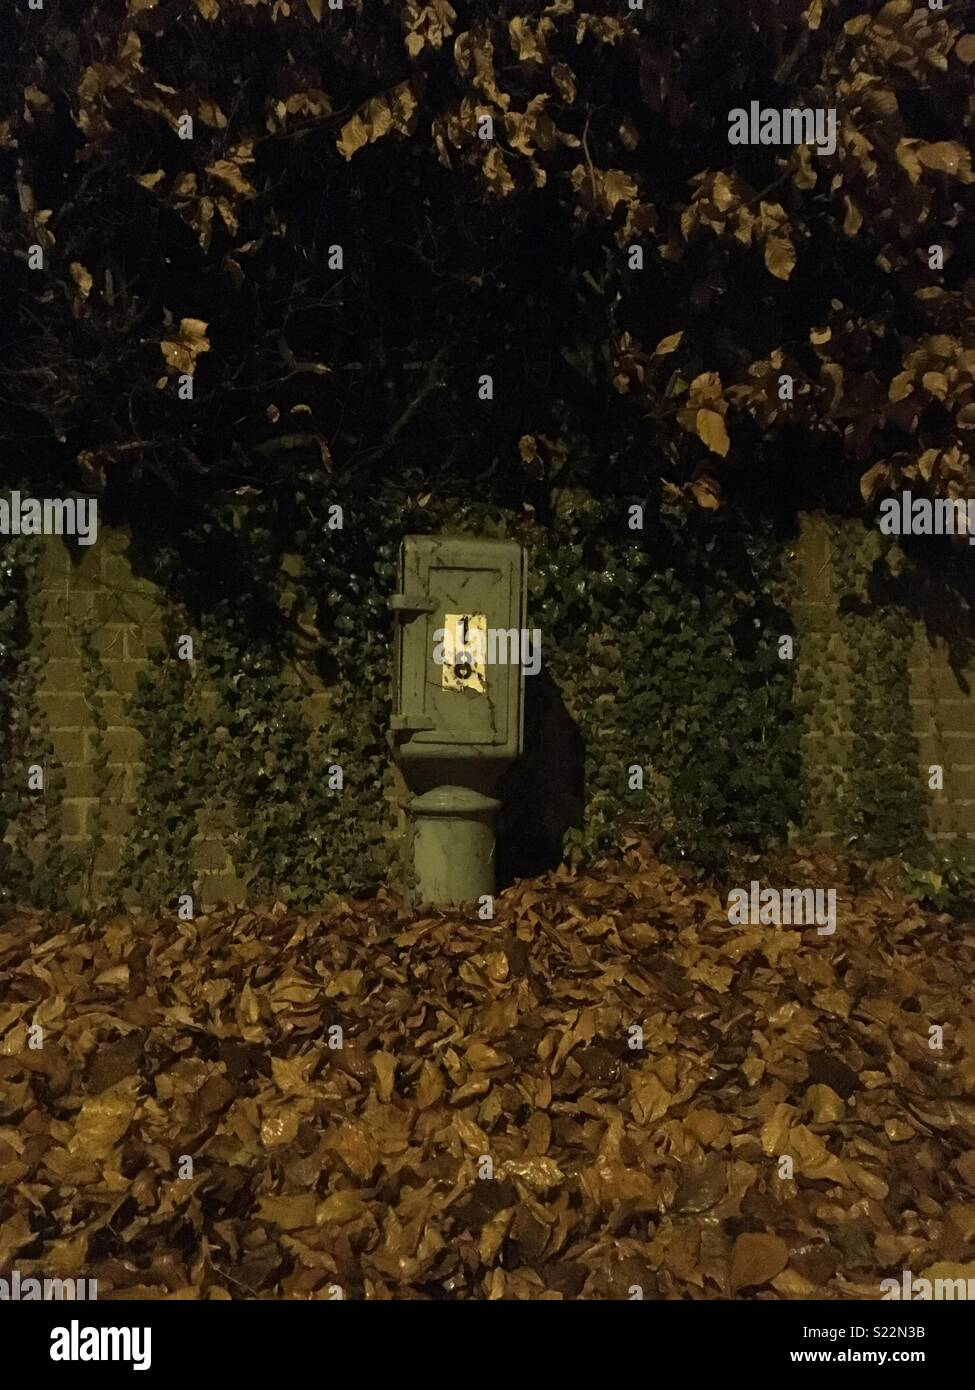 Street furniture in a pile of leaves pictured at night under streetlights. - Stock Image